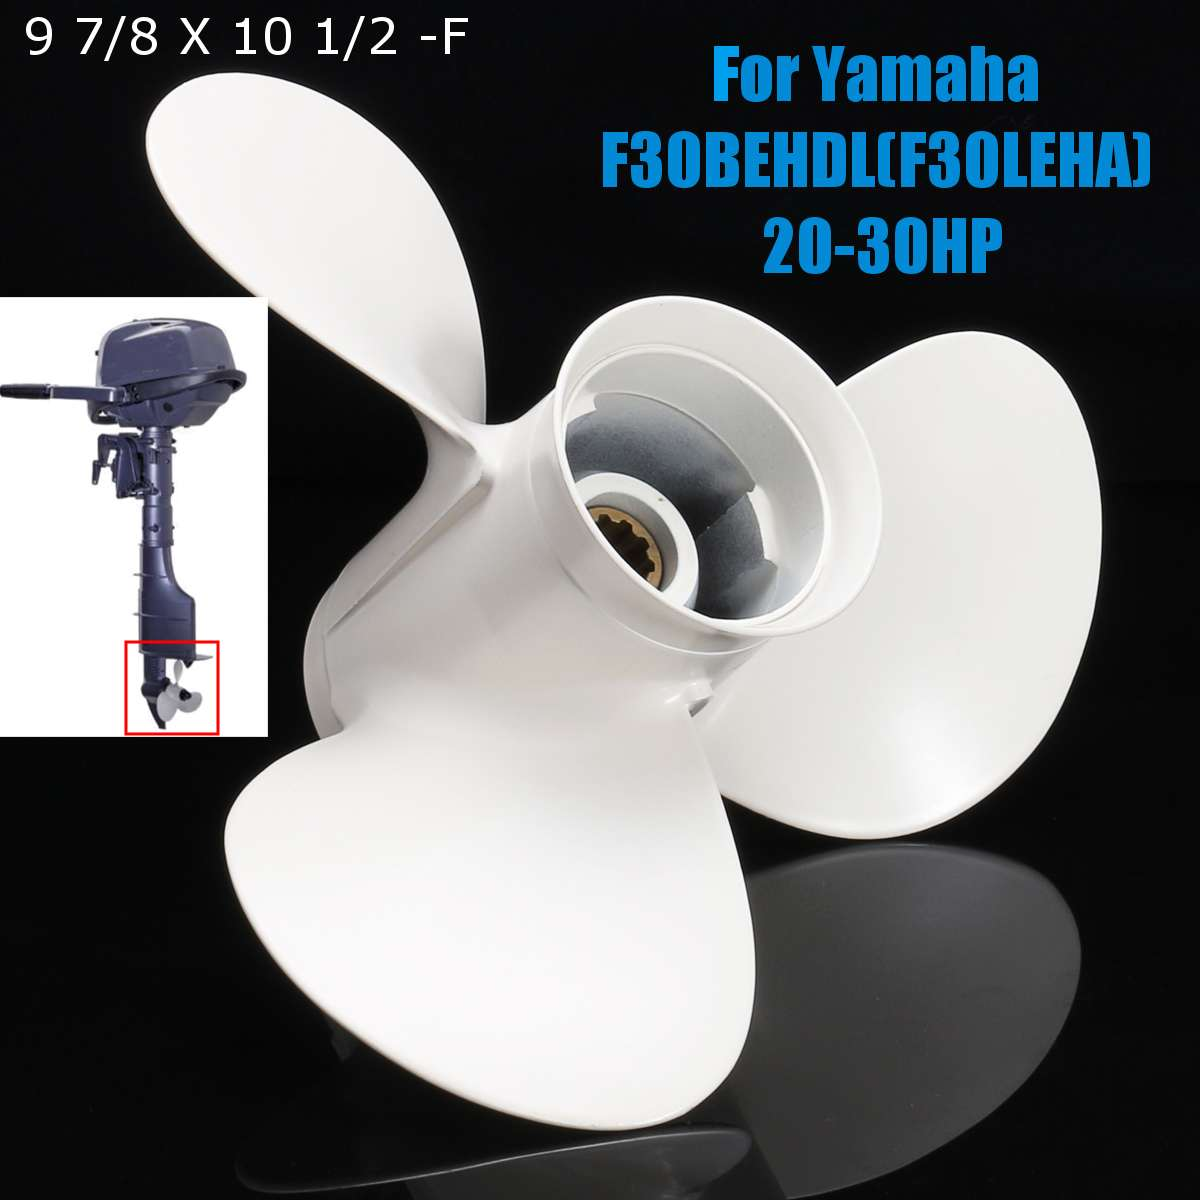 Boat Engine Propeller Aluminum 9 7 8x10 1 2 F for Yamaha 20HP 25HP 30HP Outboard